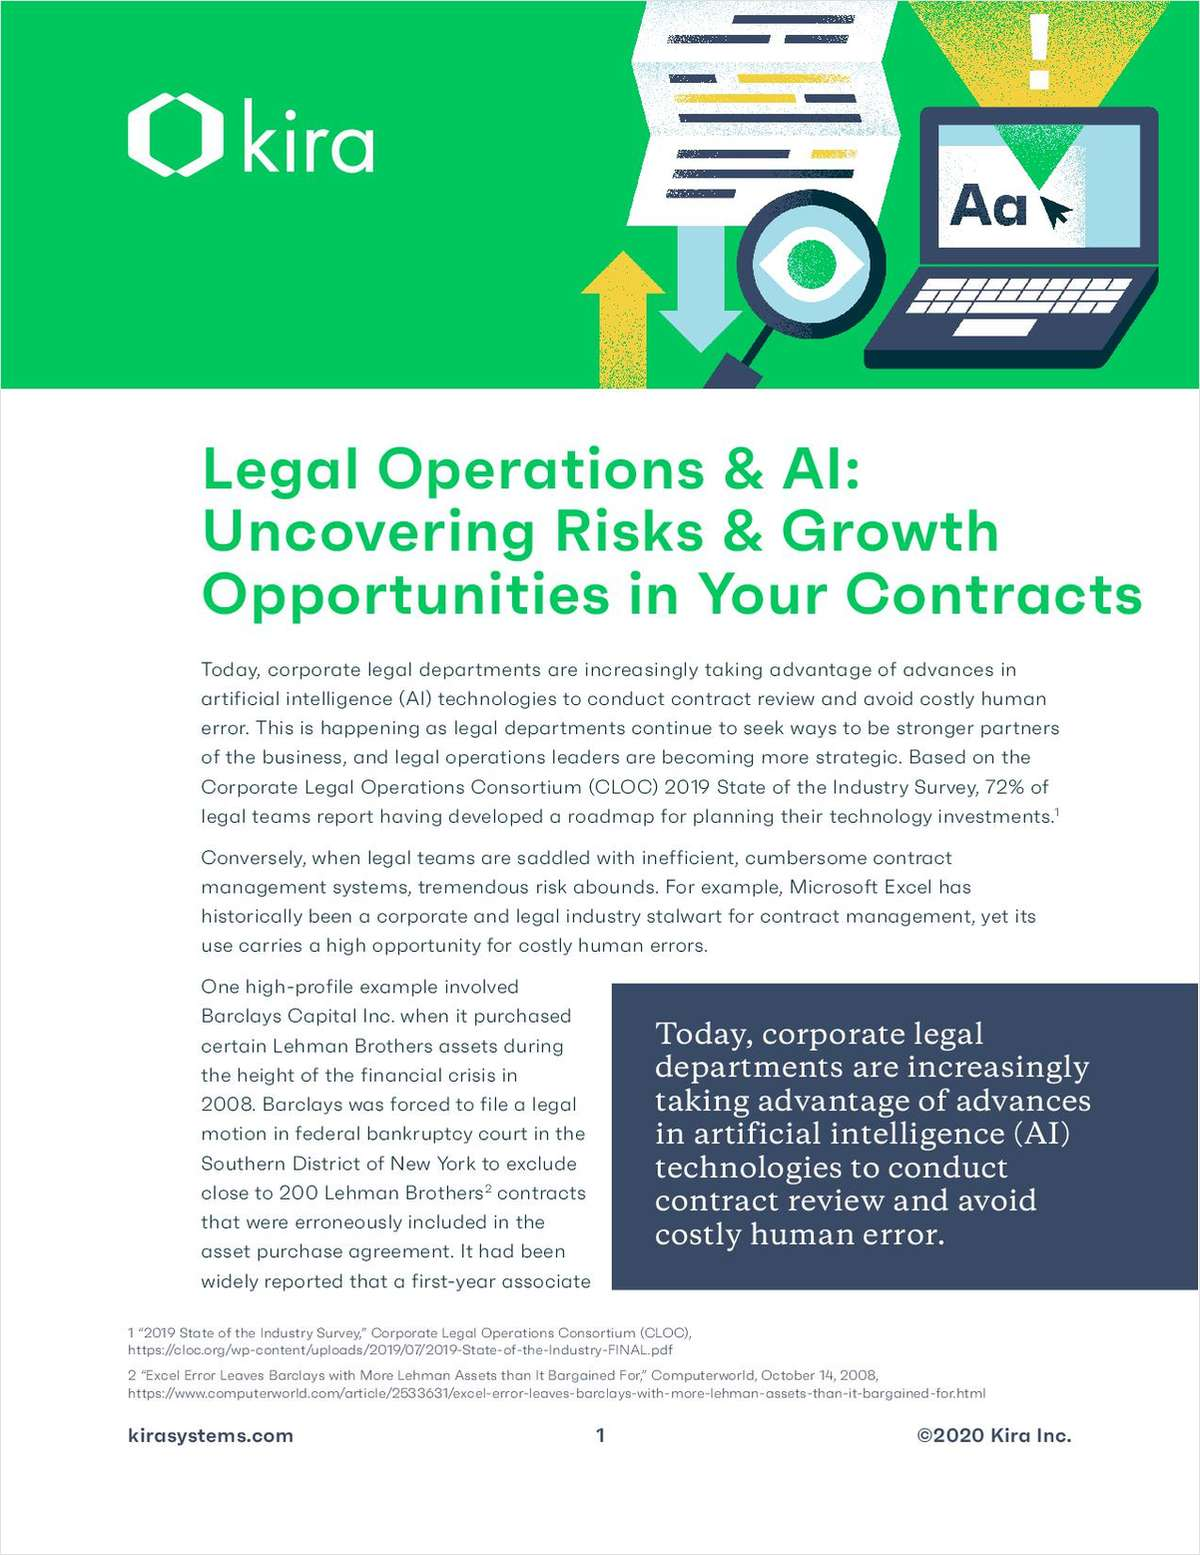 Legal Operations & AI: Uncovering Risks & Growth Opportunities in Your Contracts